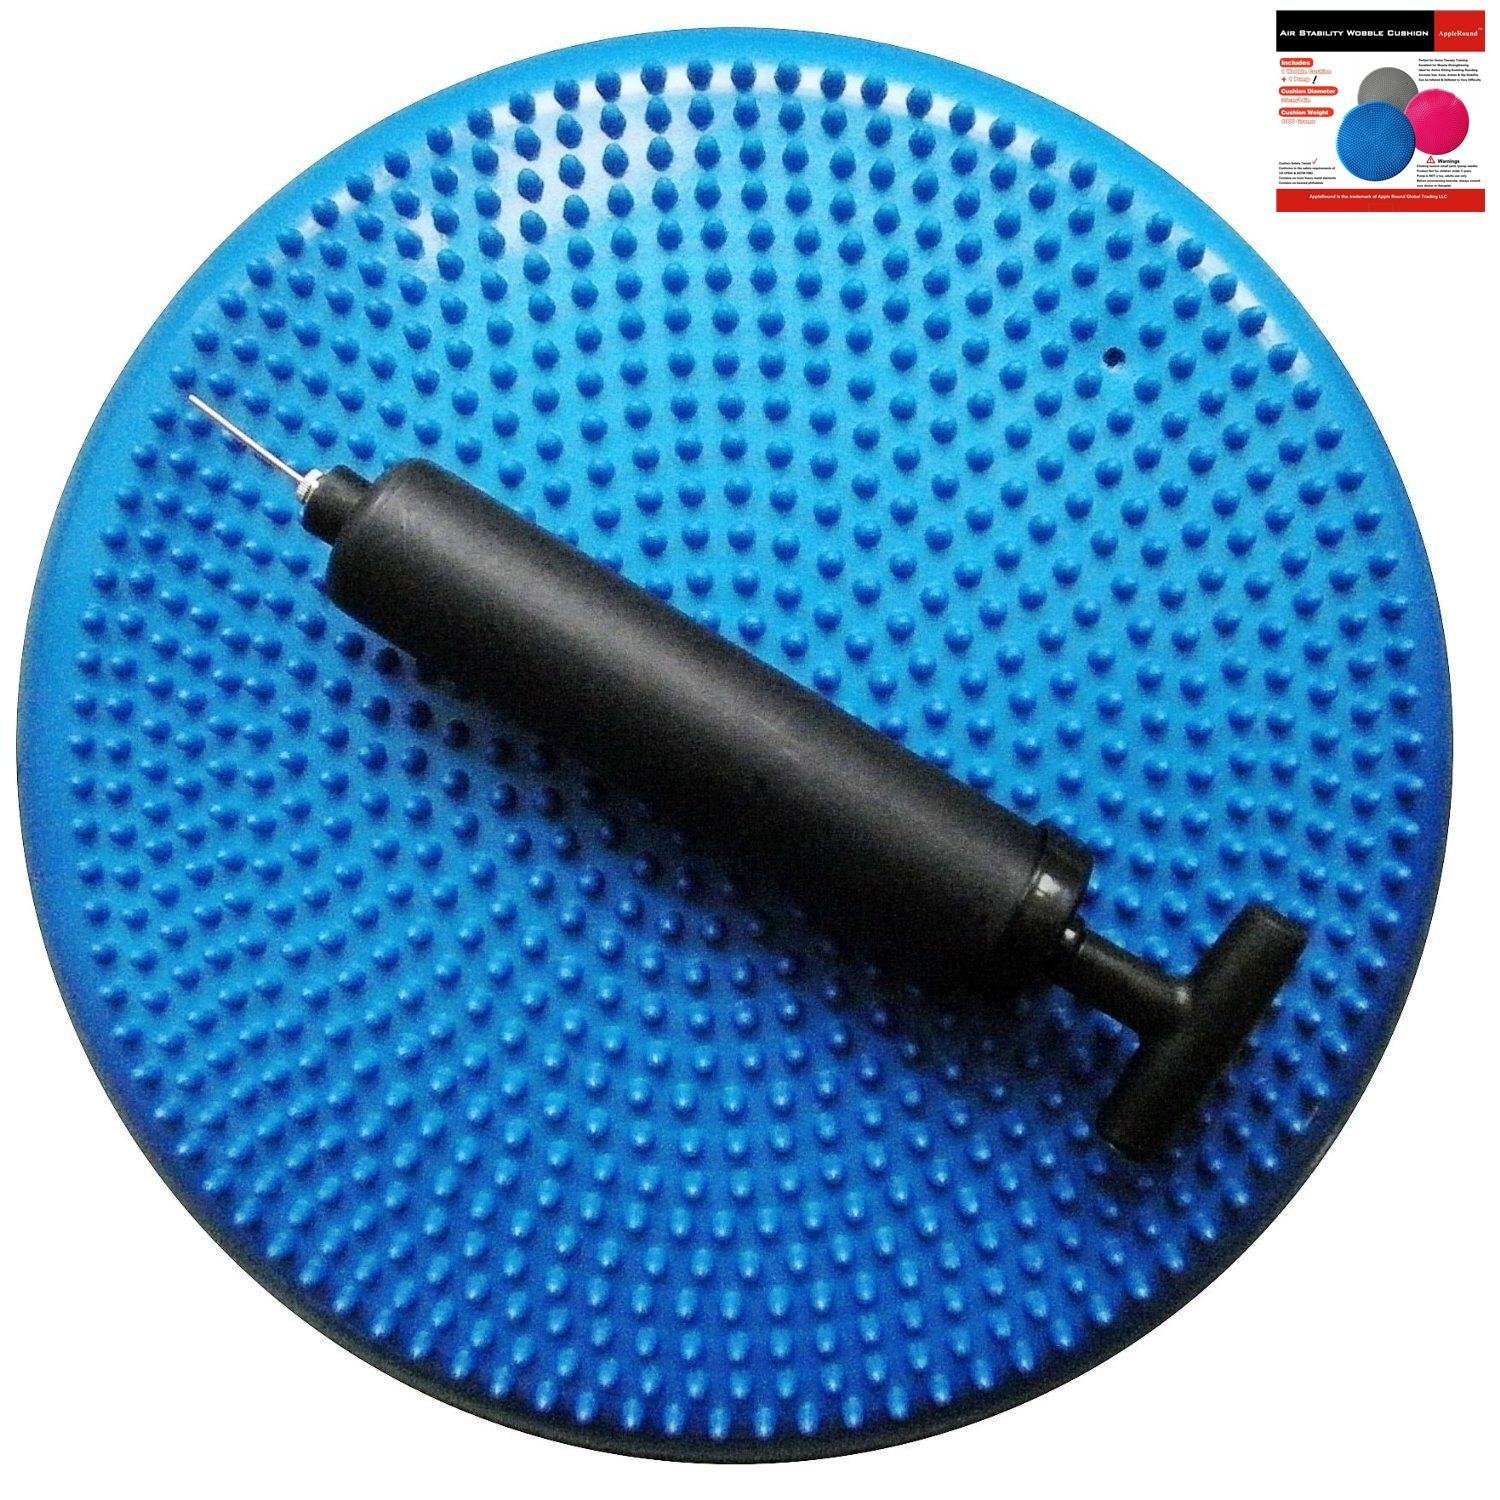 Air stability wobble cushion blue 35cm 14in diameter balance disc pump included amazon co uk sports outdoors